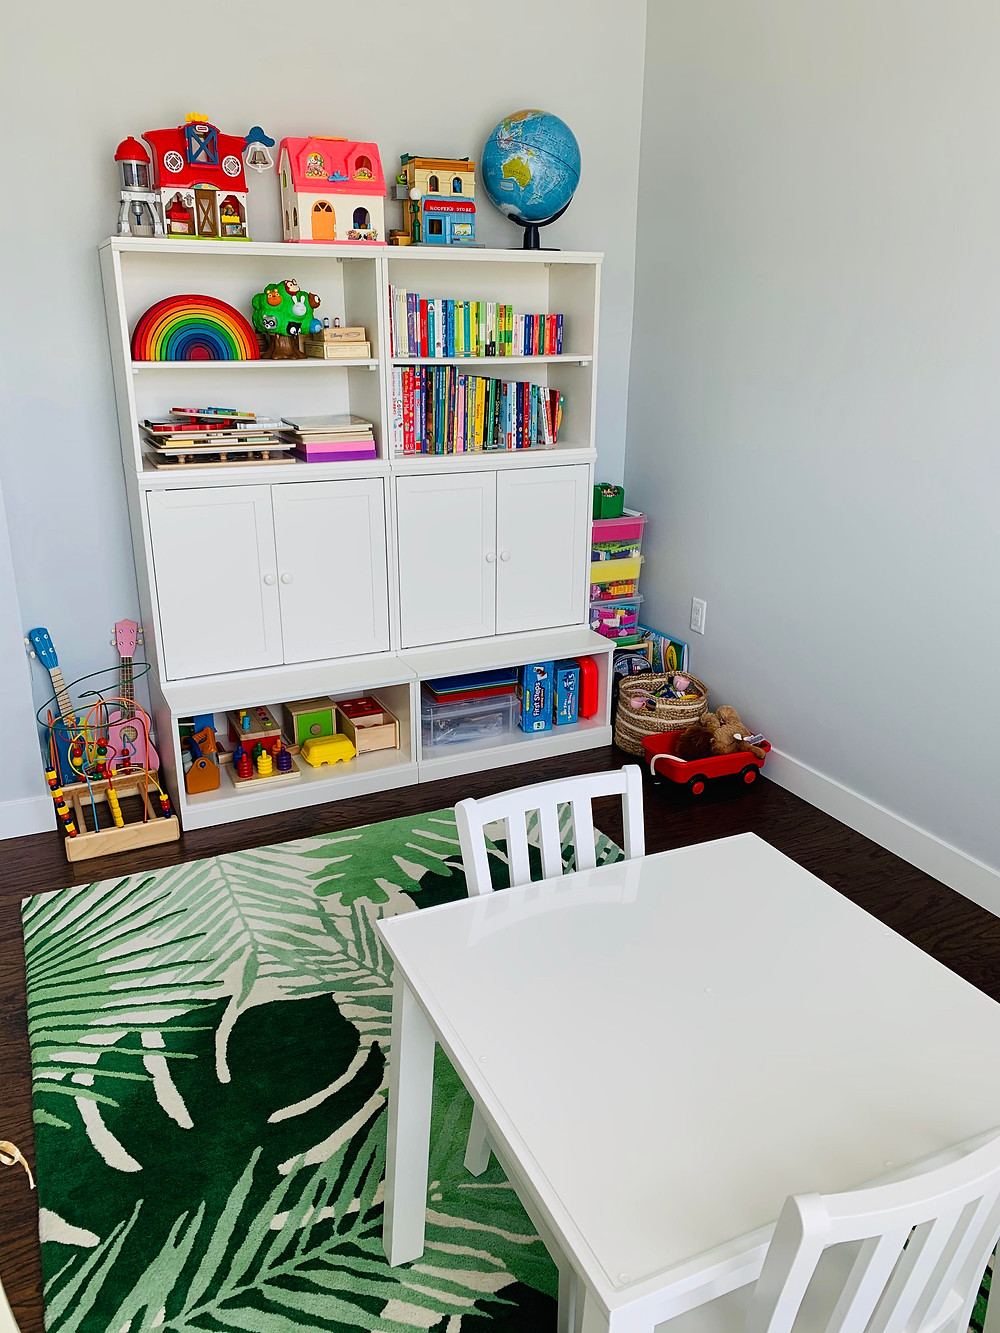 small table and chairs on rug next to bookshelf with kids' toys